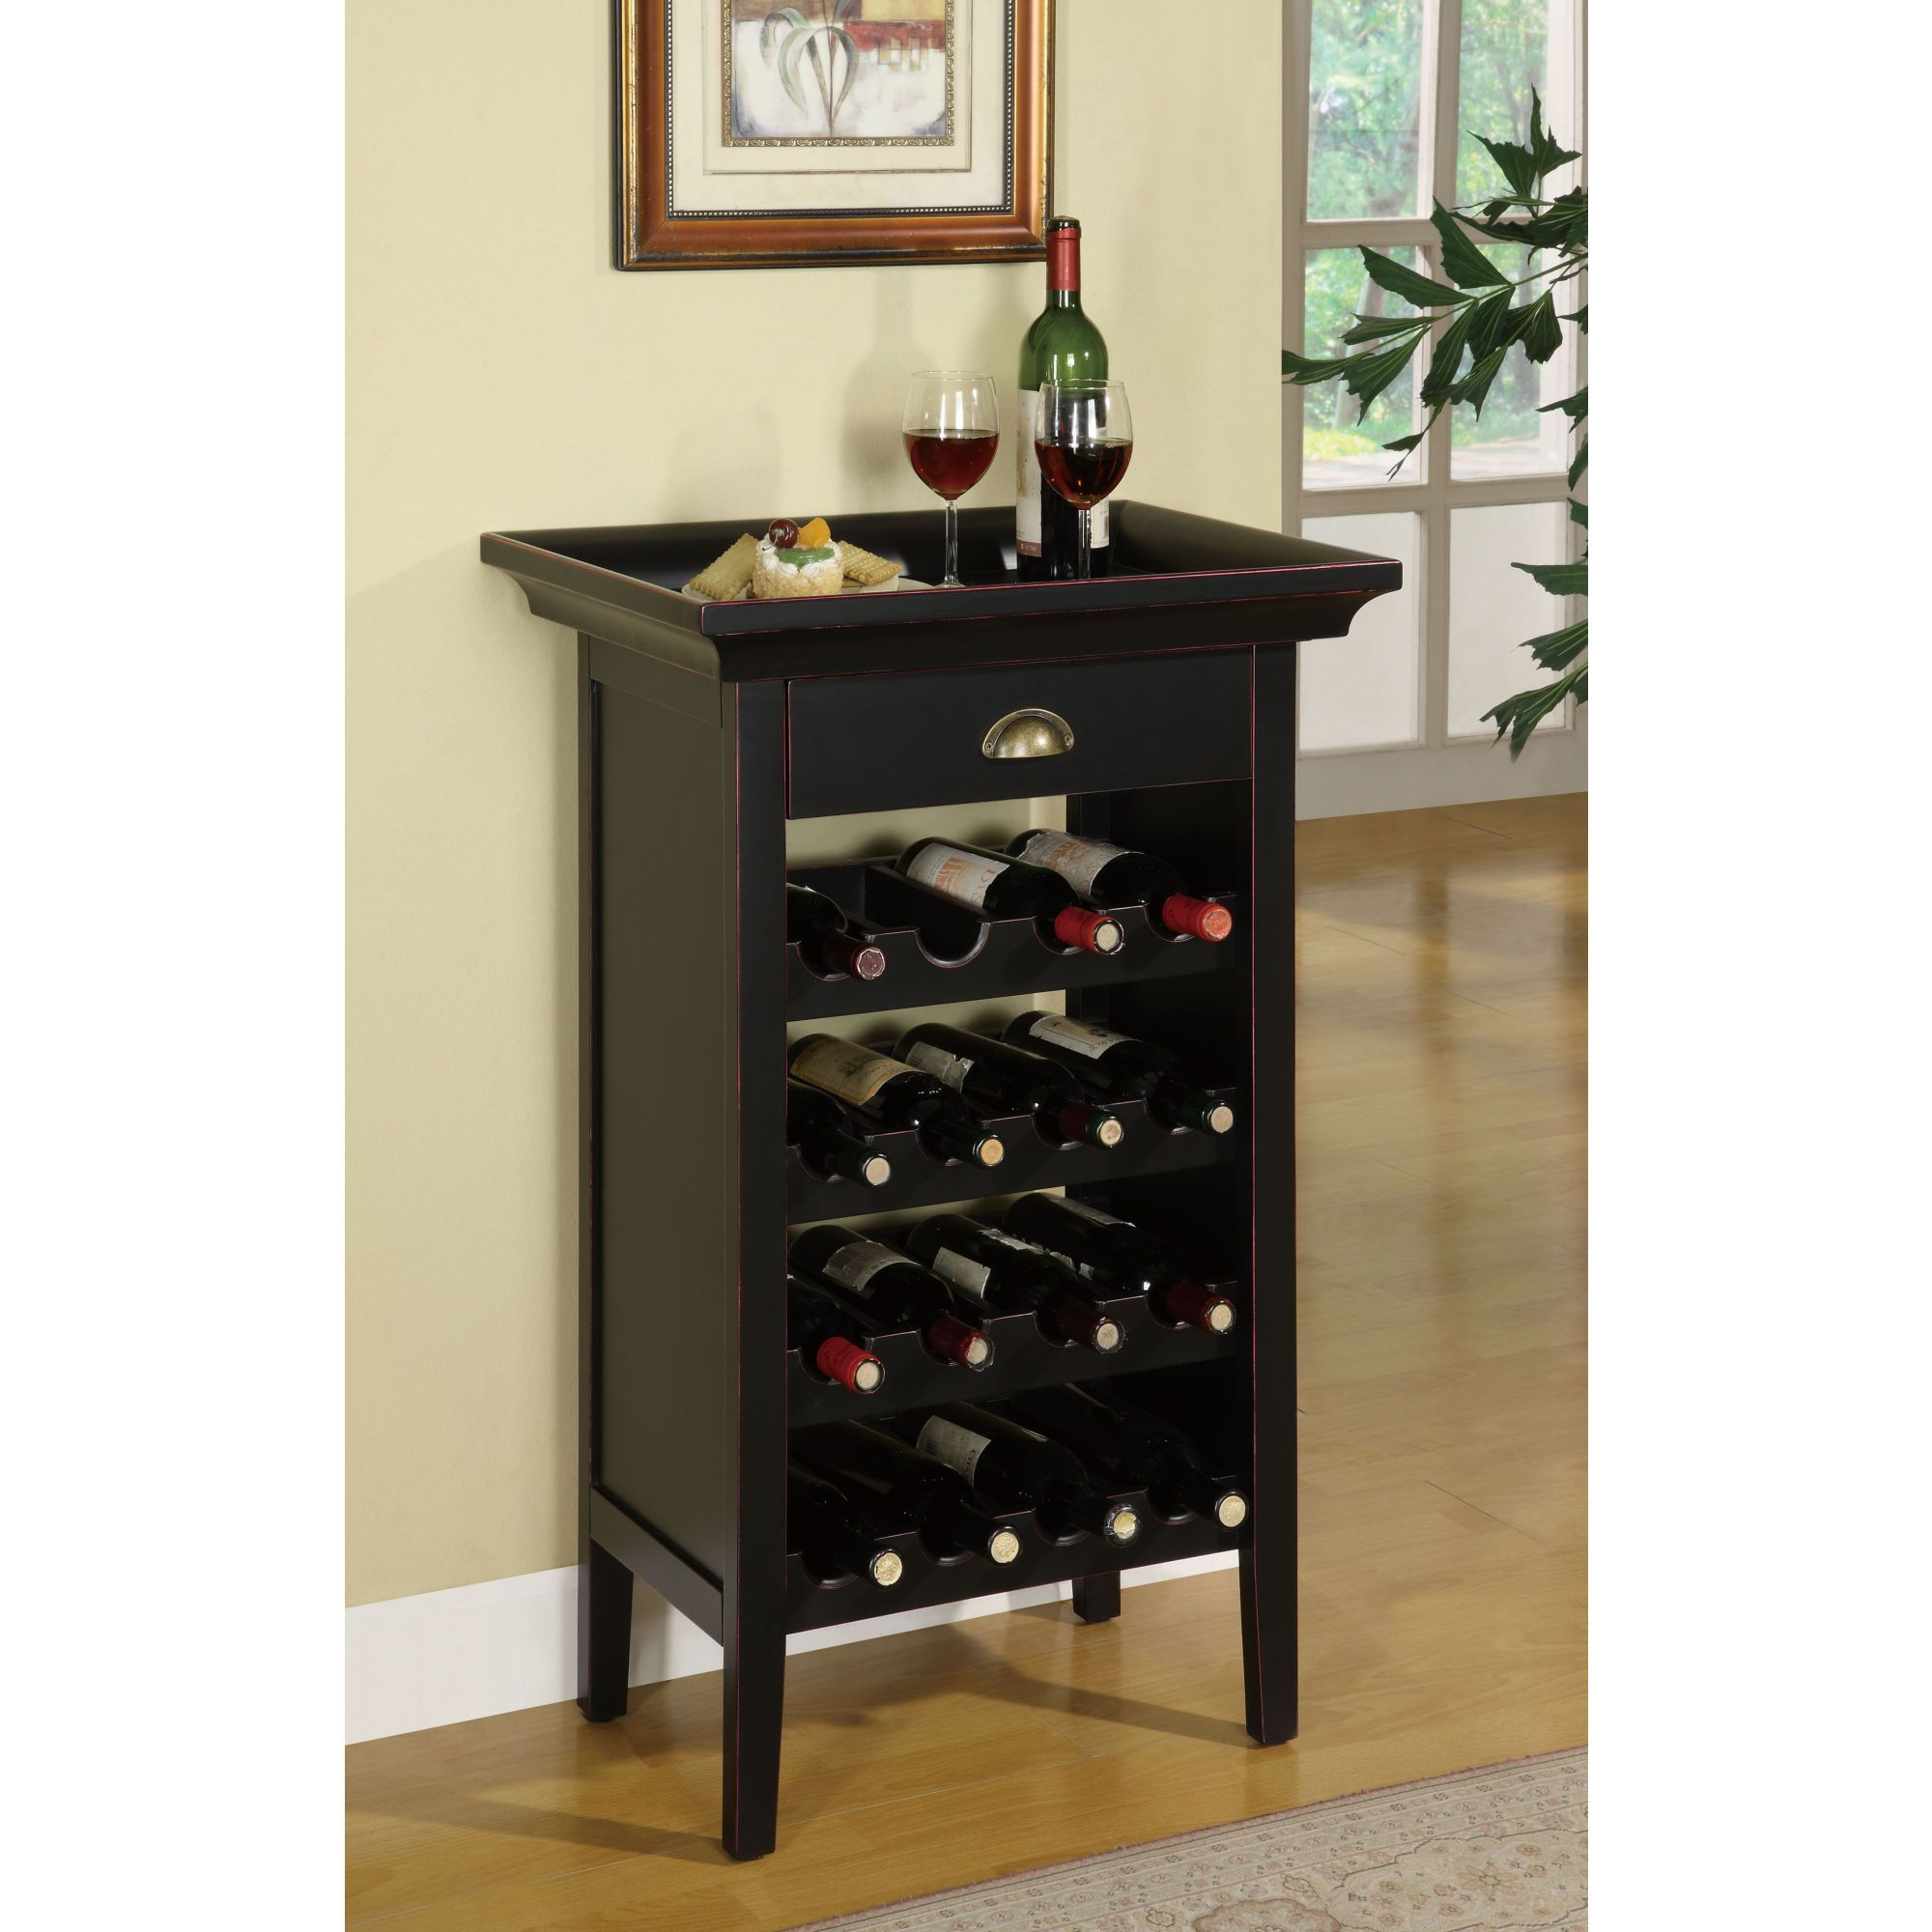 Liquor Cabinet Ideas: Wine Rack/ Table With Removable Tray. Compact....perfect